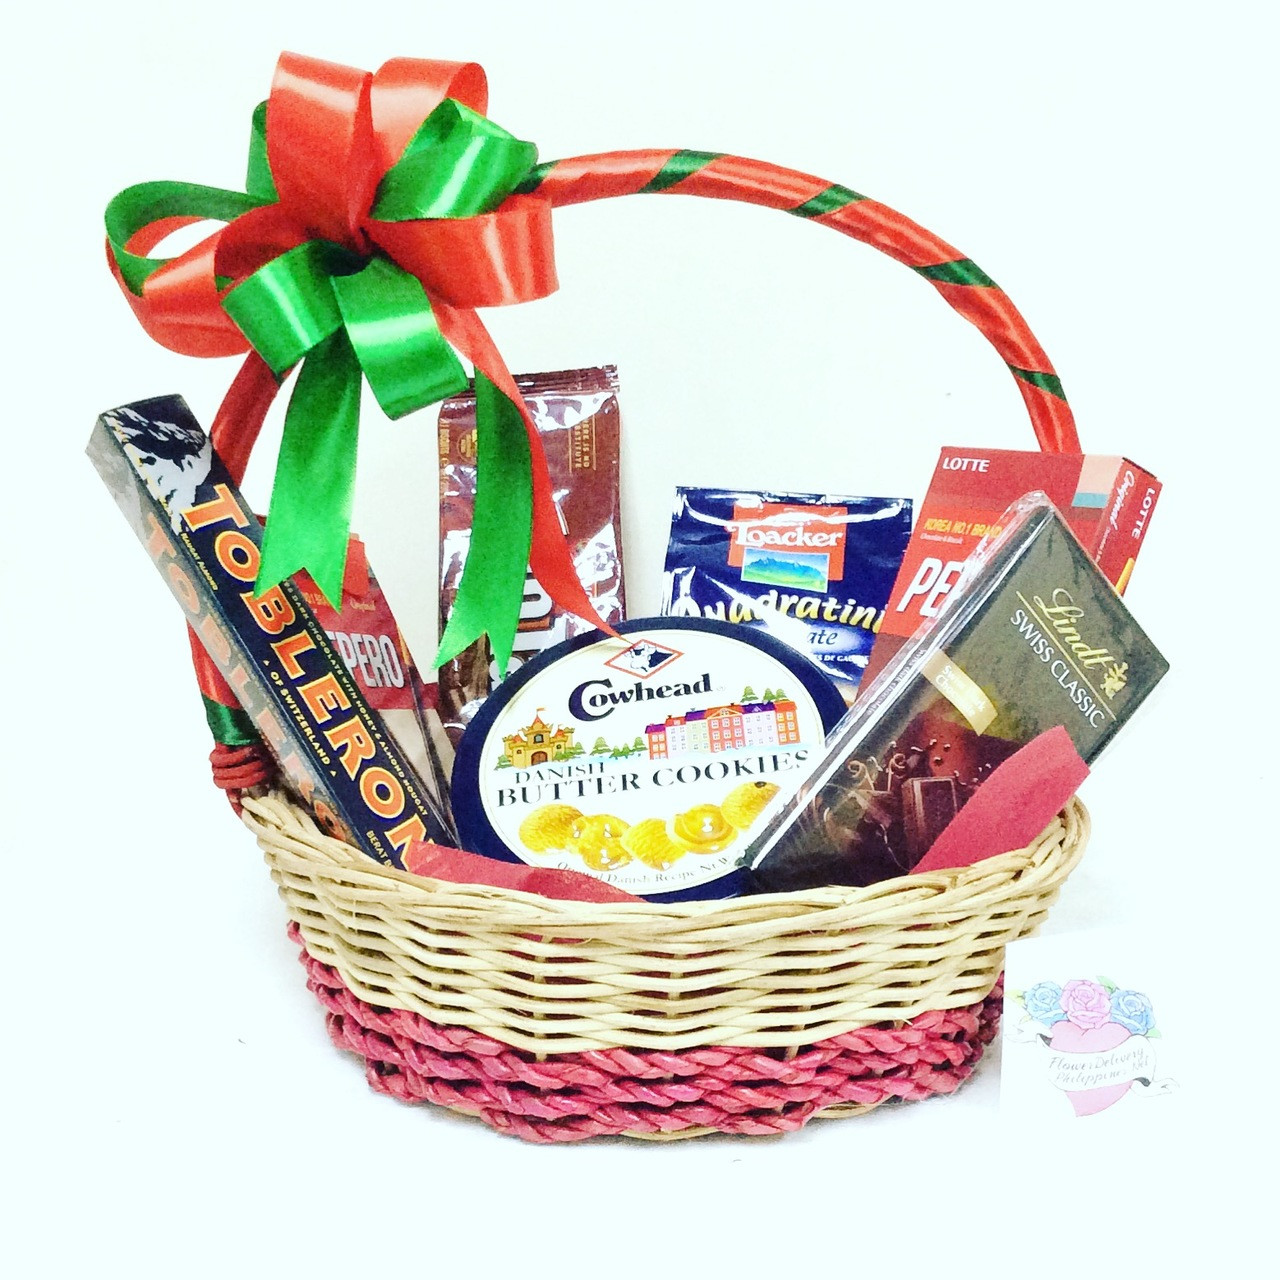 Deluxe Cookies and Chocolates Basket